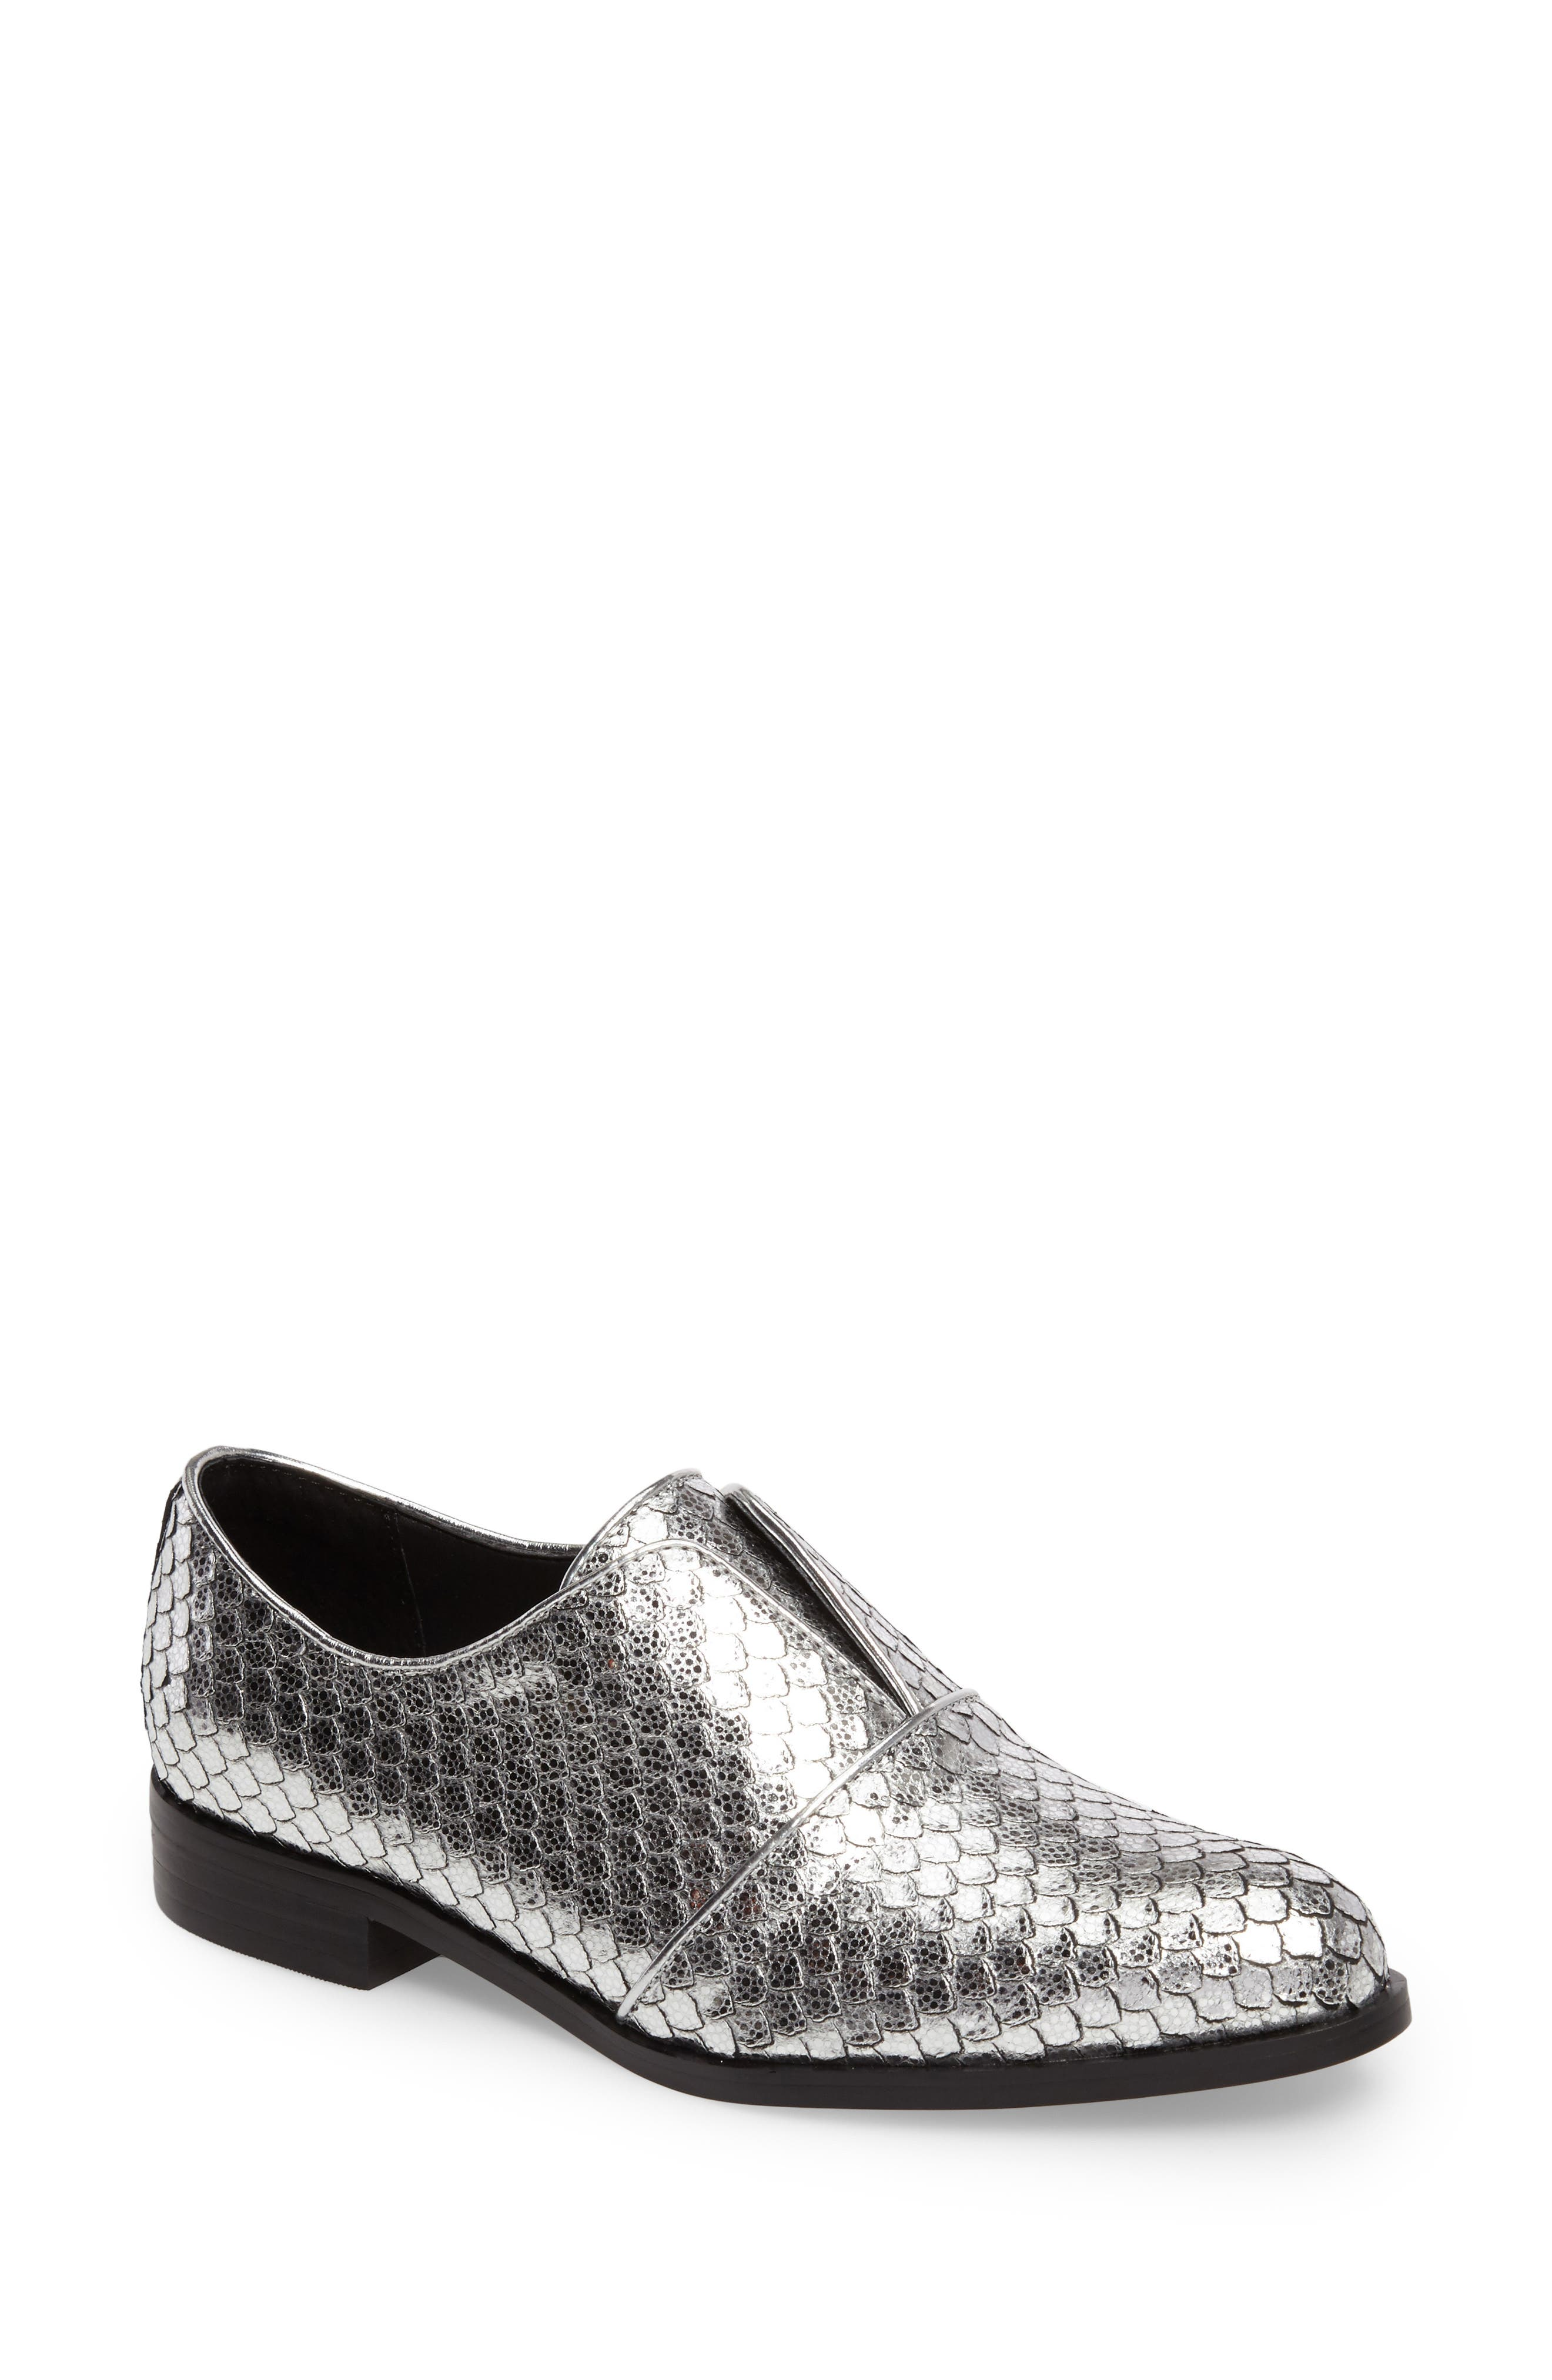 Isola Maria Slip-On Oxford,                         Main,                         color, Silver Cut Snake Print Leather